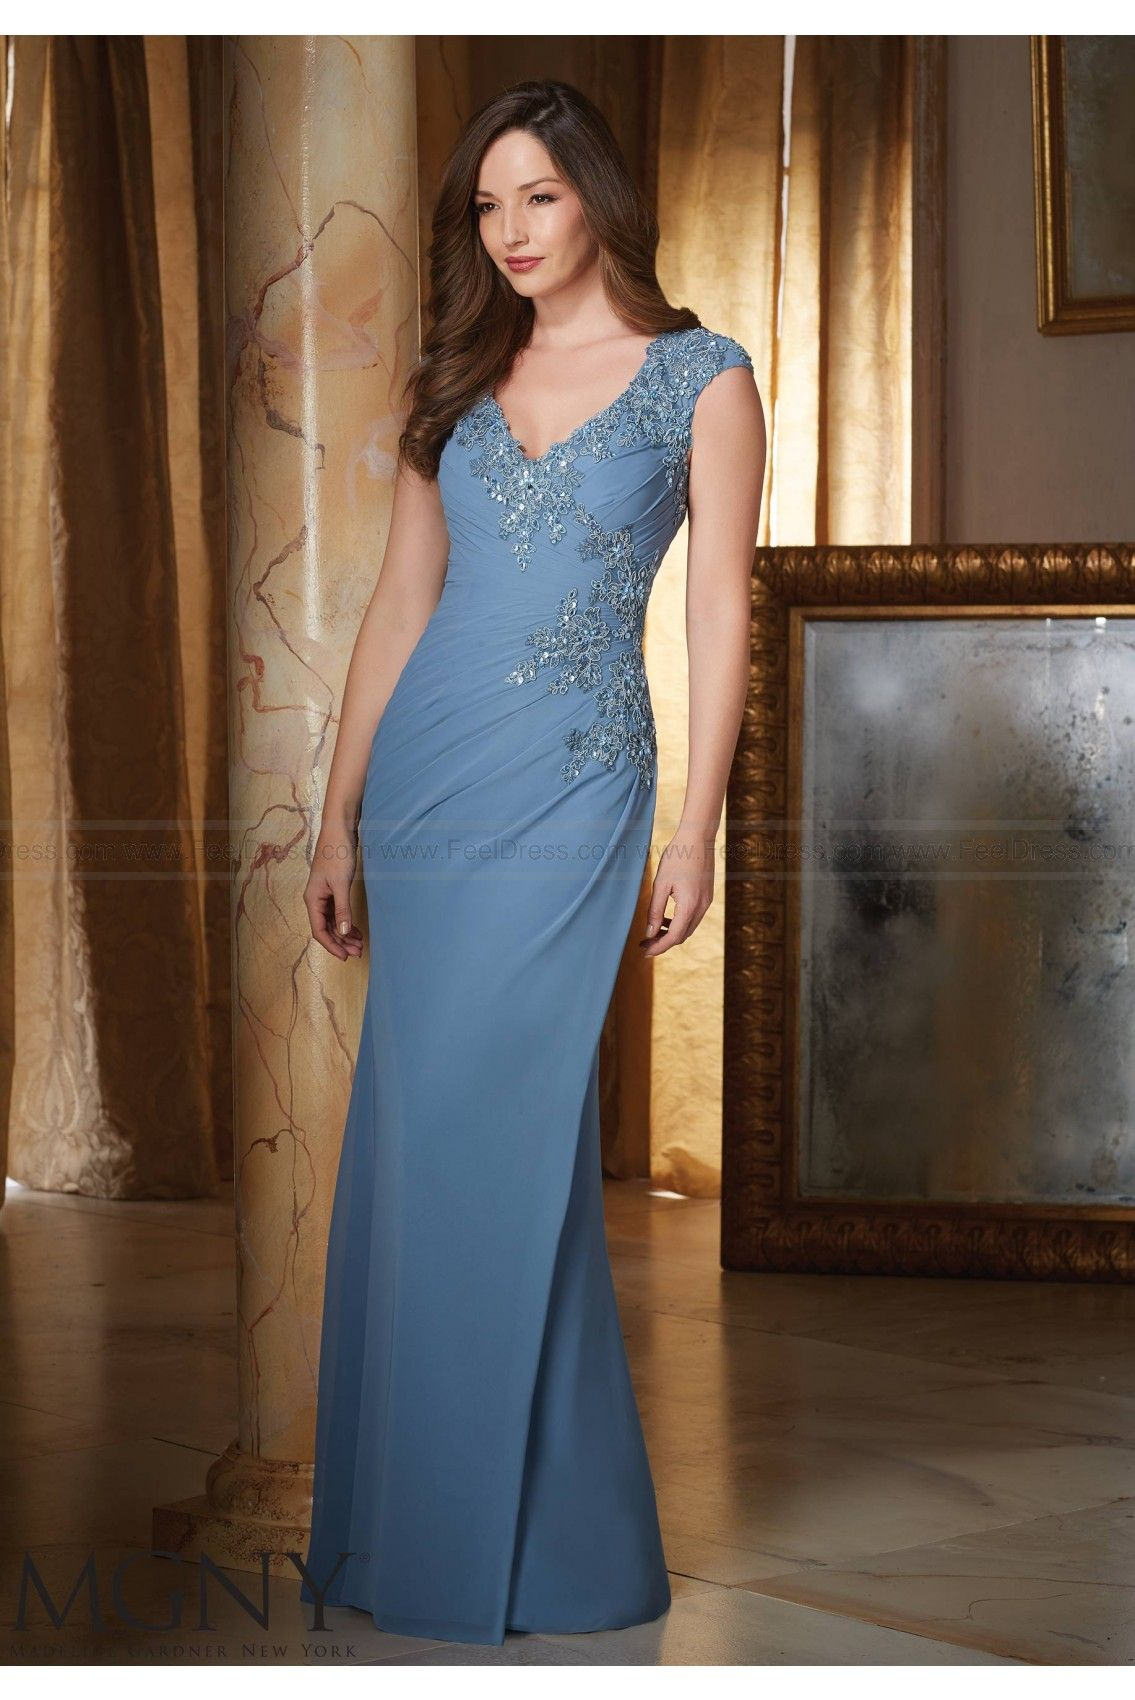 Mori Lee Evening Gown 71418 | Mori Lee | Pinterest | Mori lee, Gowns ...